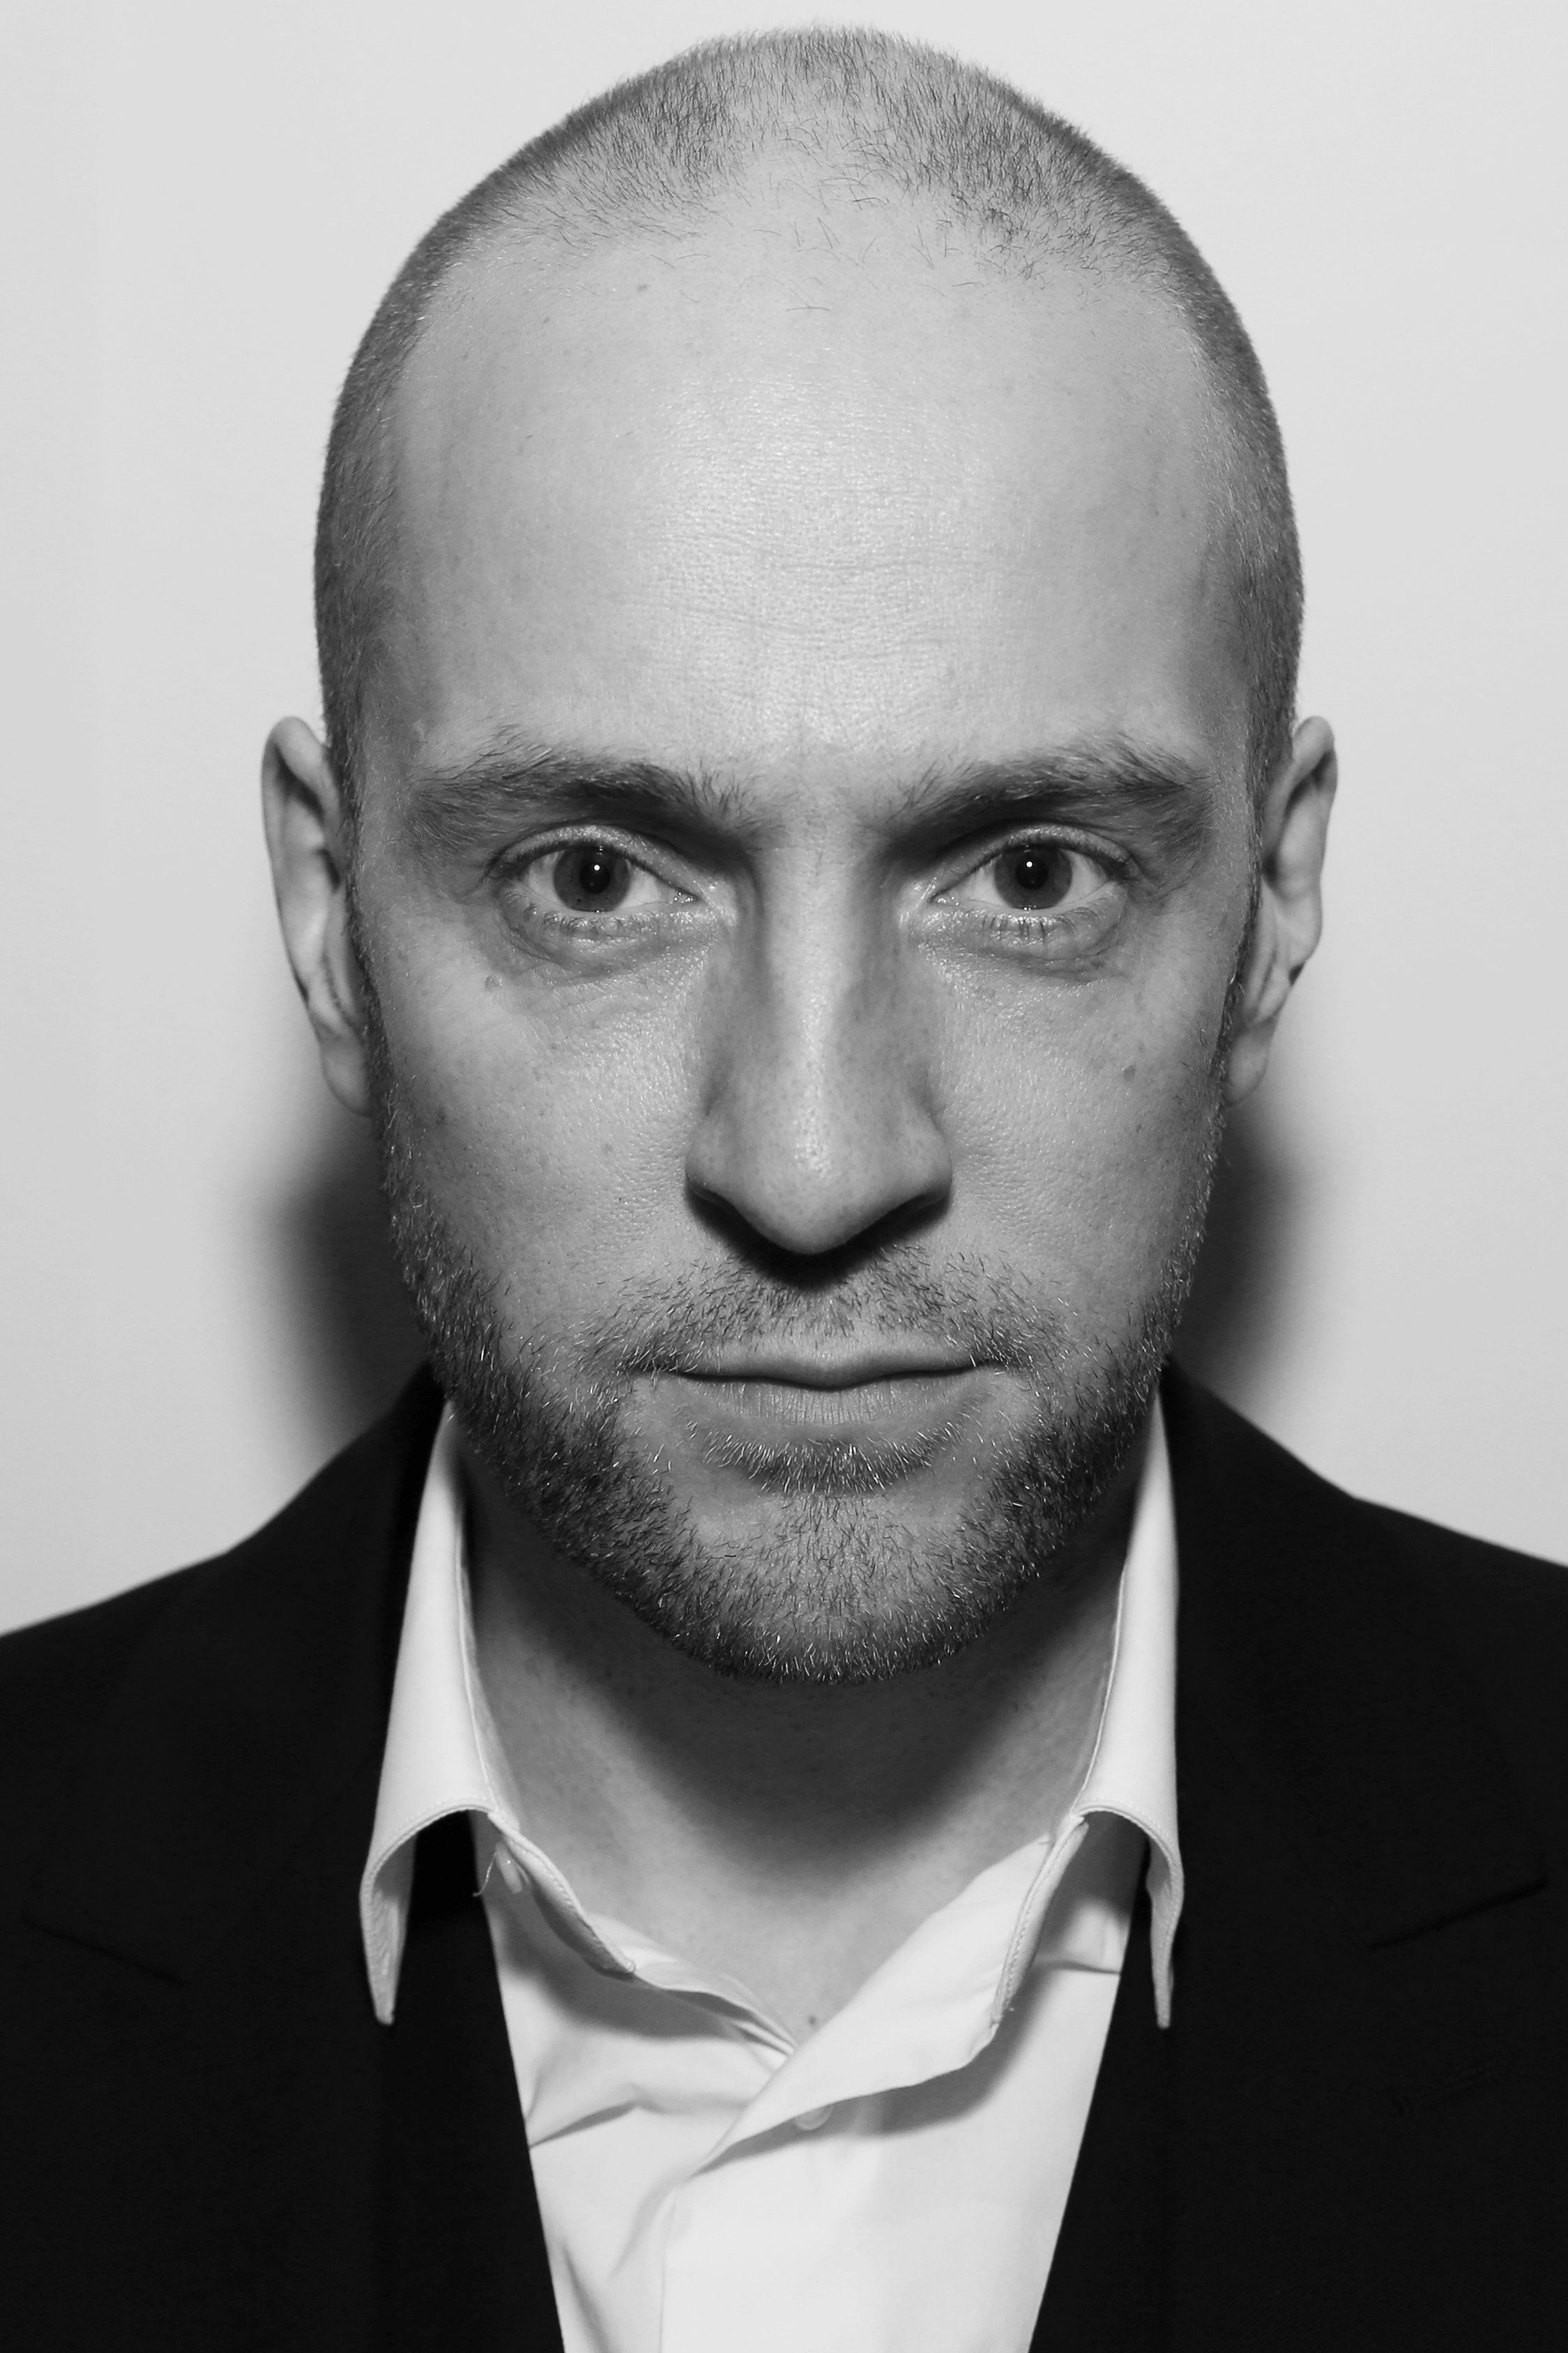 Derren Brown On Self-Help Industry: 'The Universe Doesn't Give A